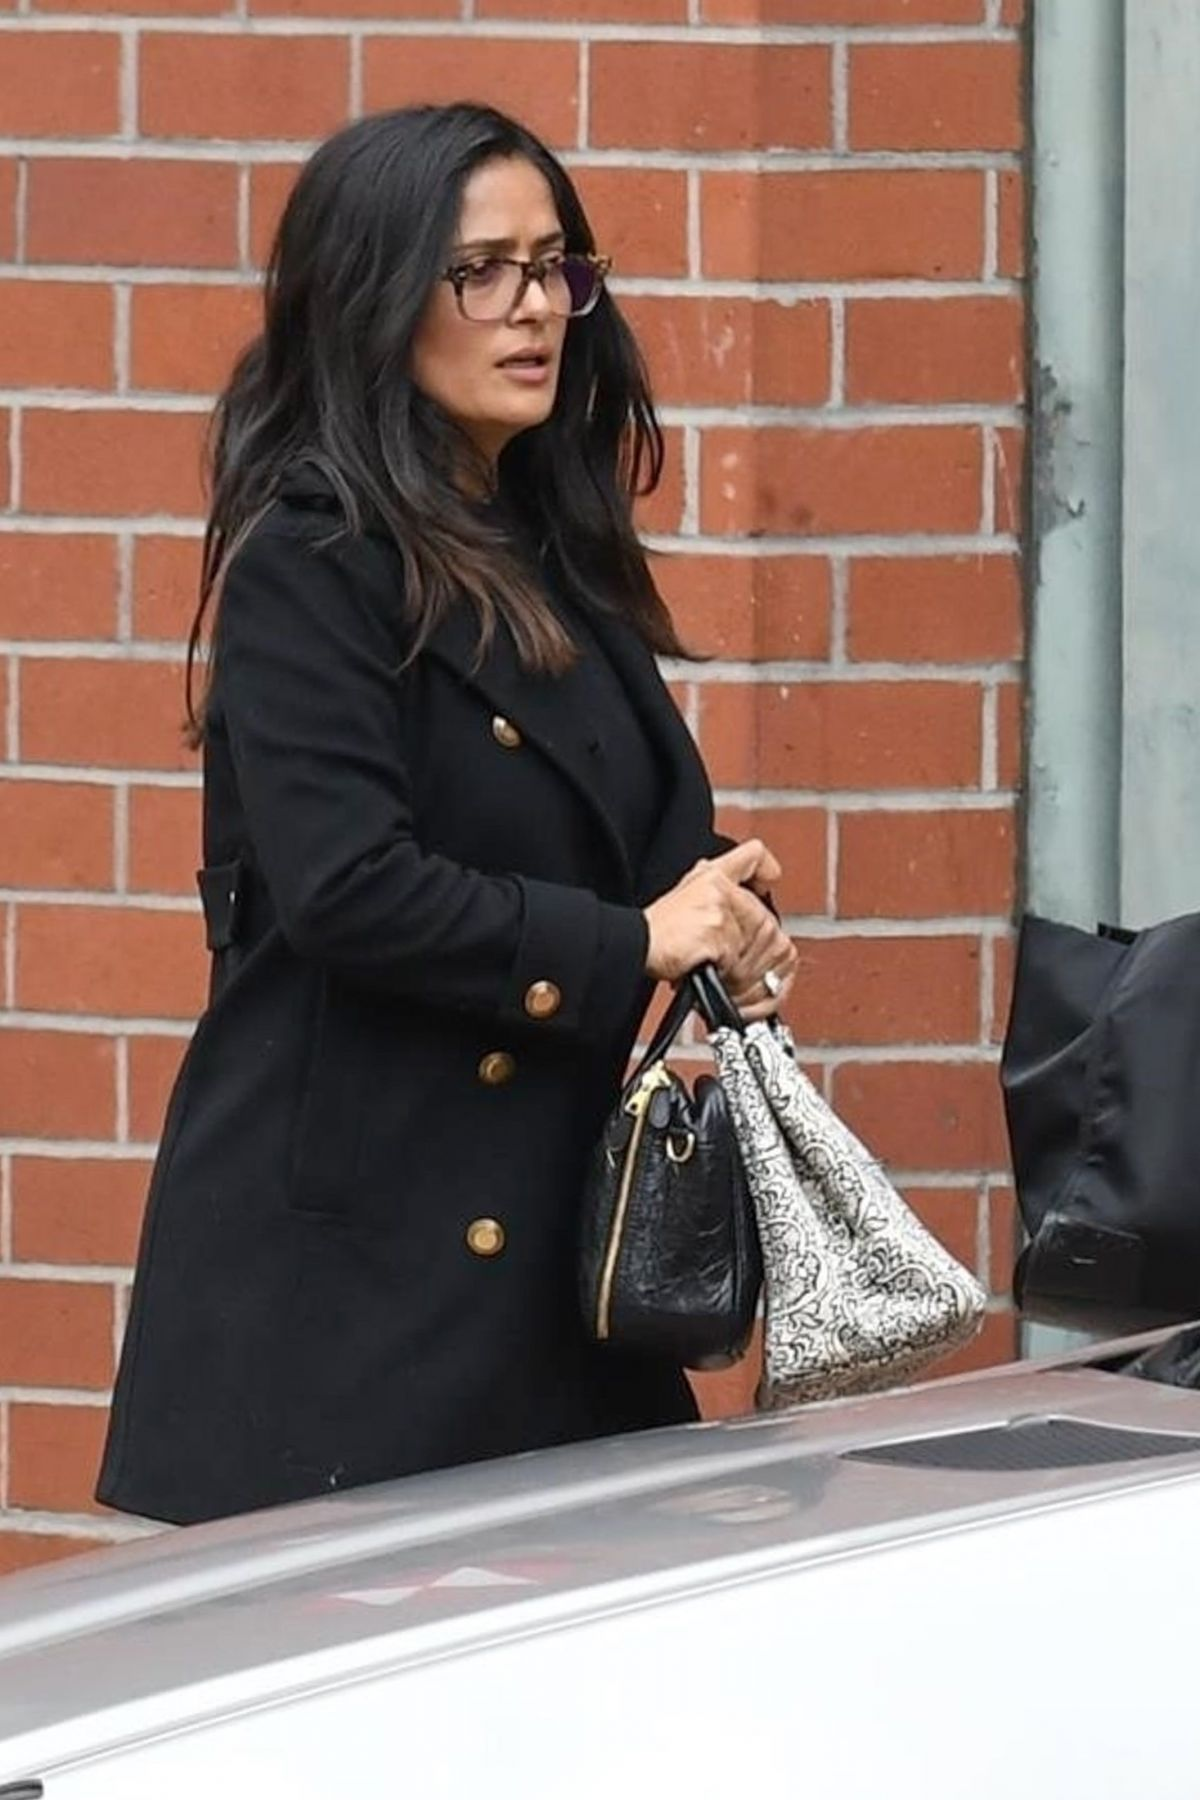 Salma Hayek Gets a lift after a medical building visit in Beverly Hills